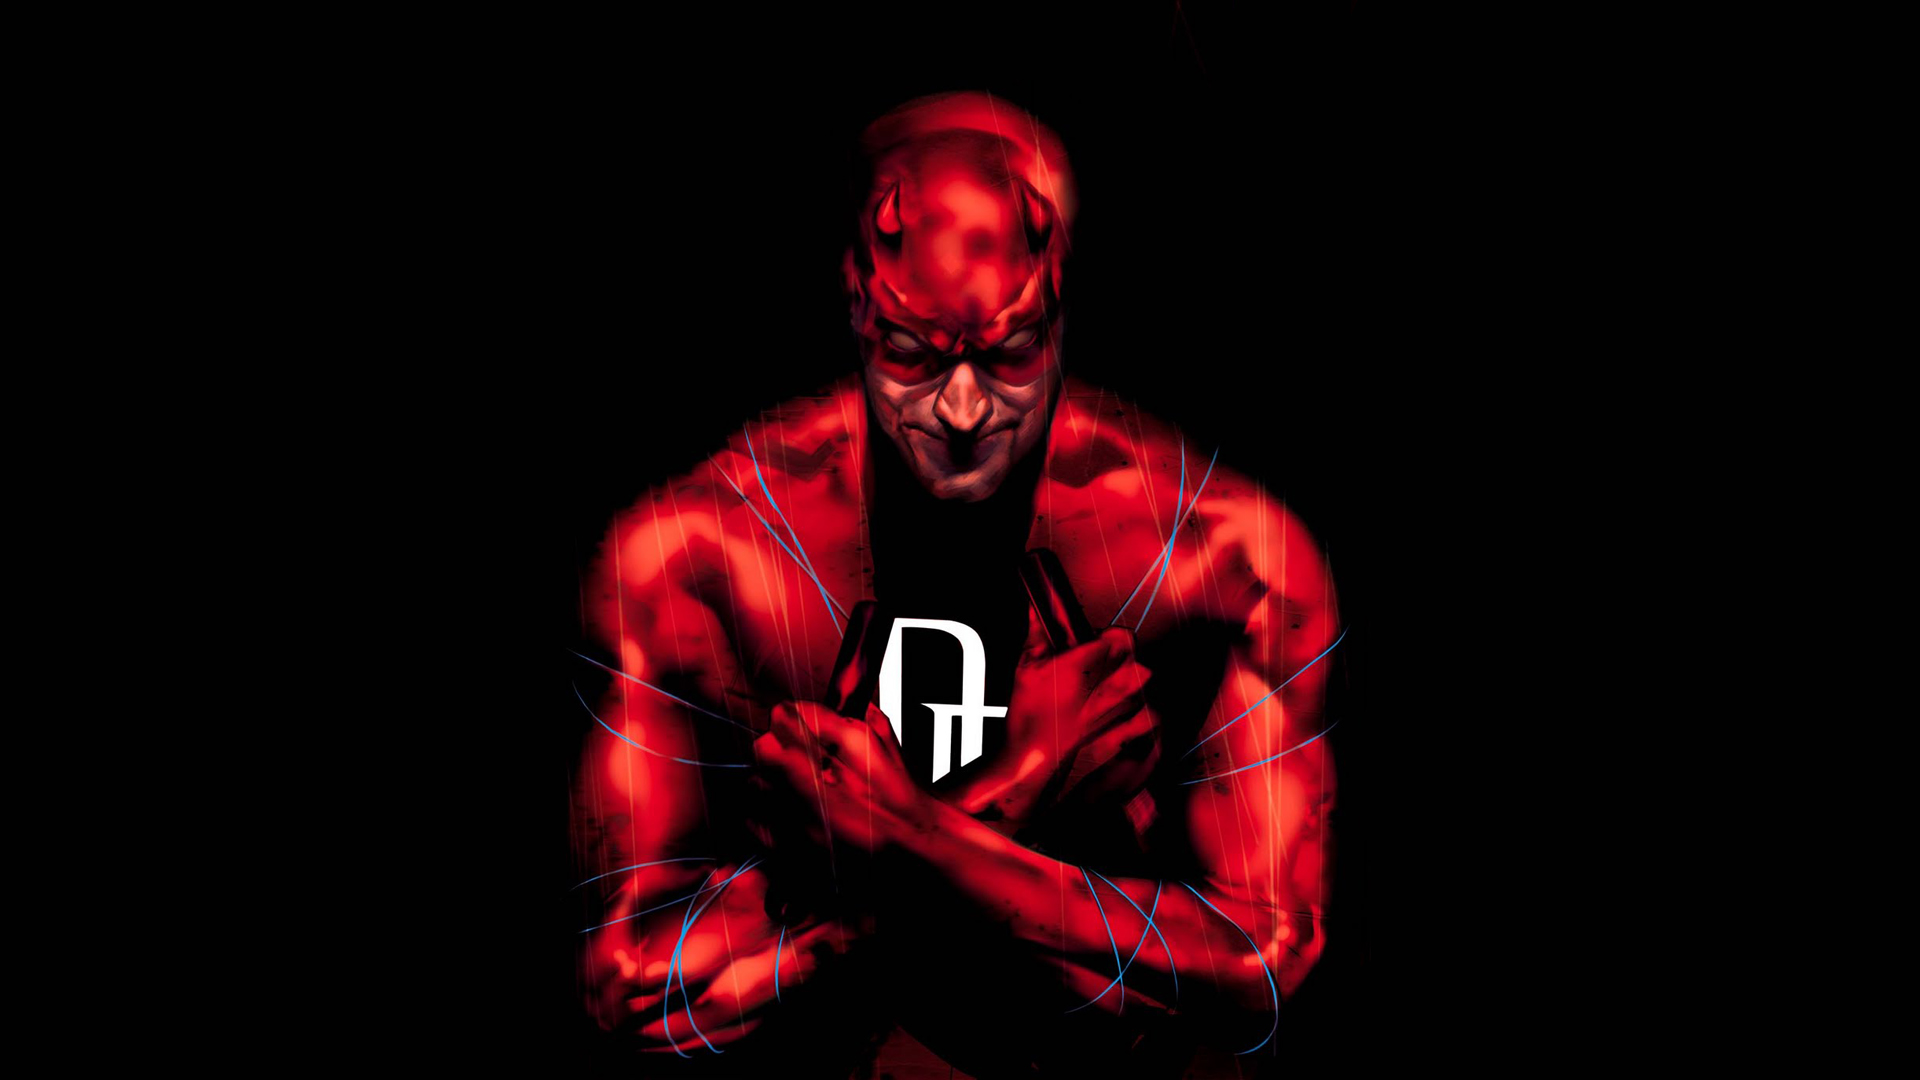 daredevil wallpaper in - photo #12